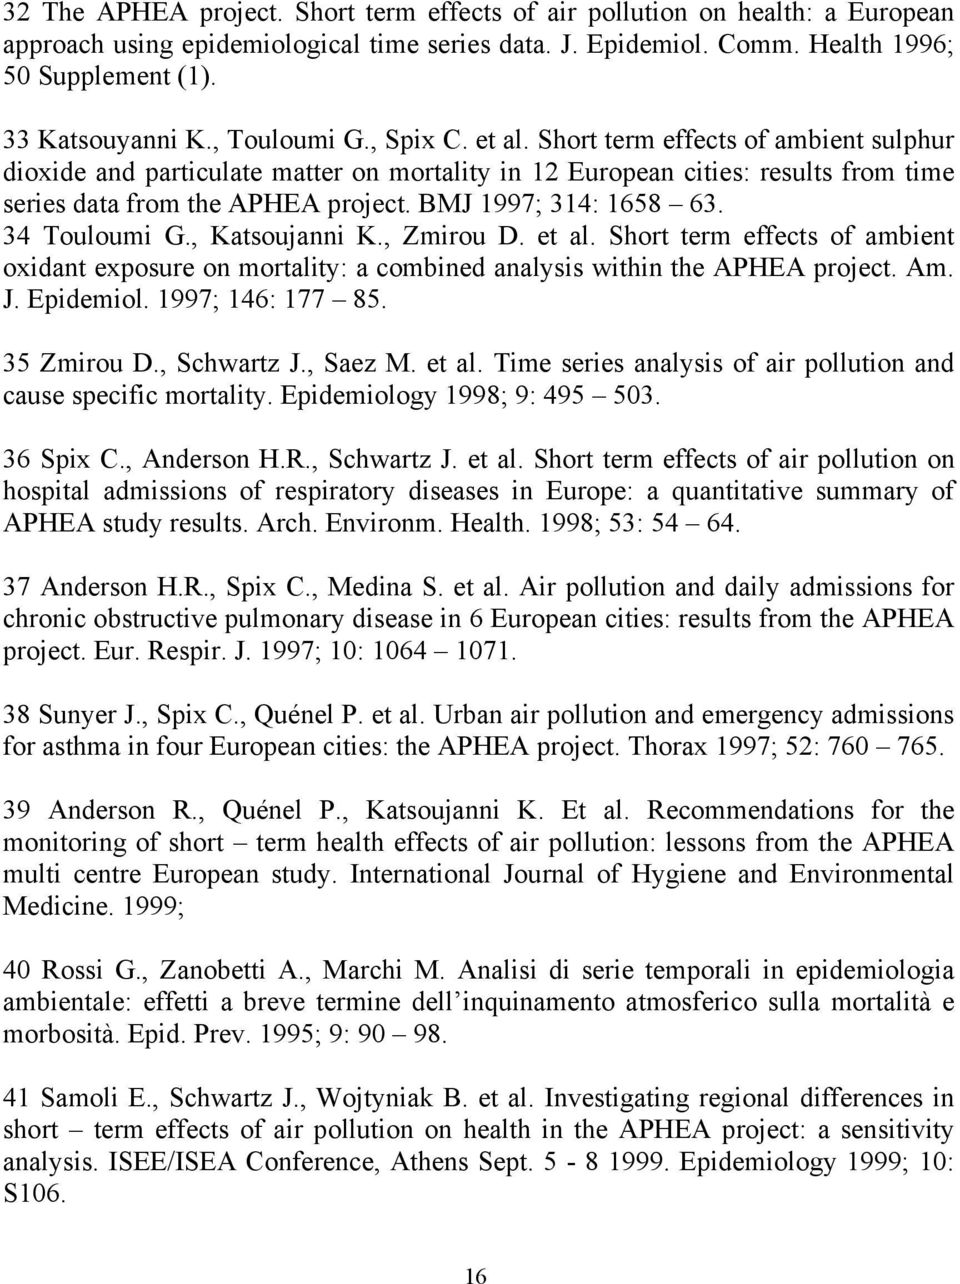 BMJ 1997; 314: 1658 63. 34 Touloumi G., Katsoujanni K., Zmirou D. et al. Short term effects of ambient oxidant exposure on mortality: a combined analysis within the APHEA project. Am. J. Epidemiol.